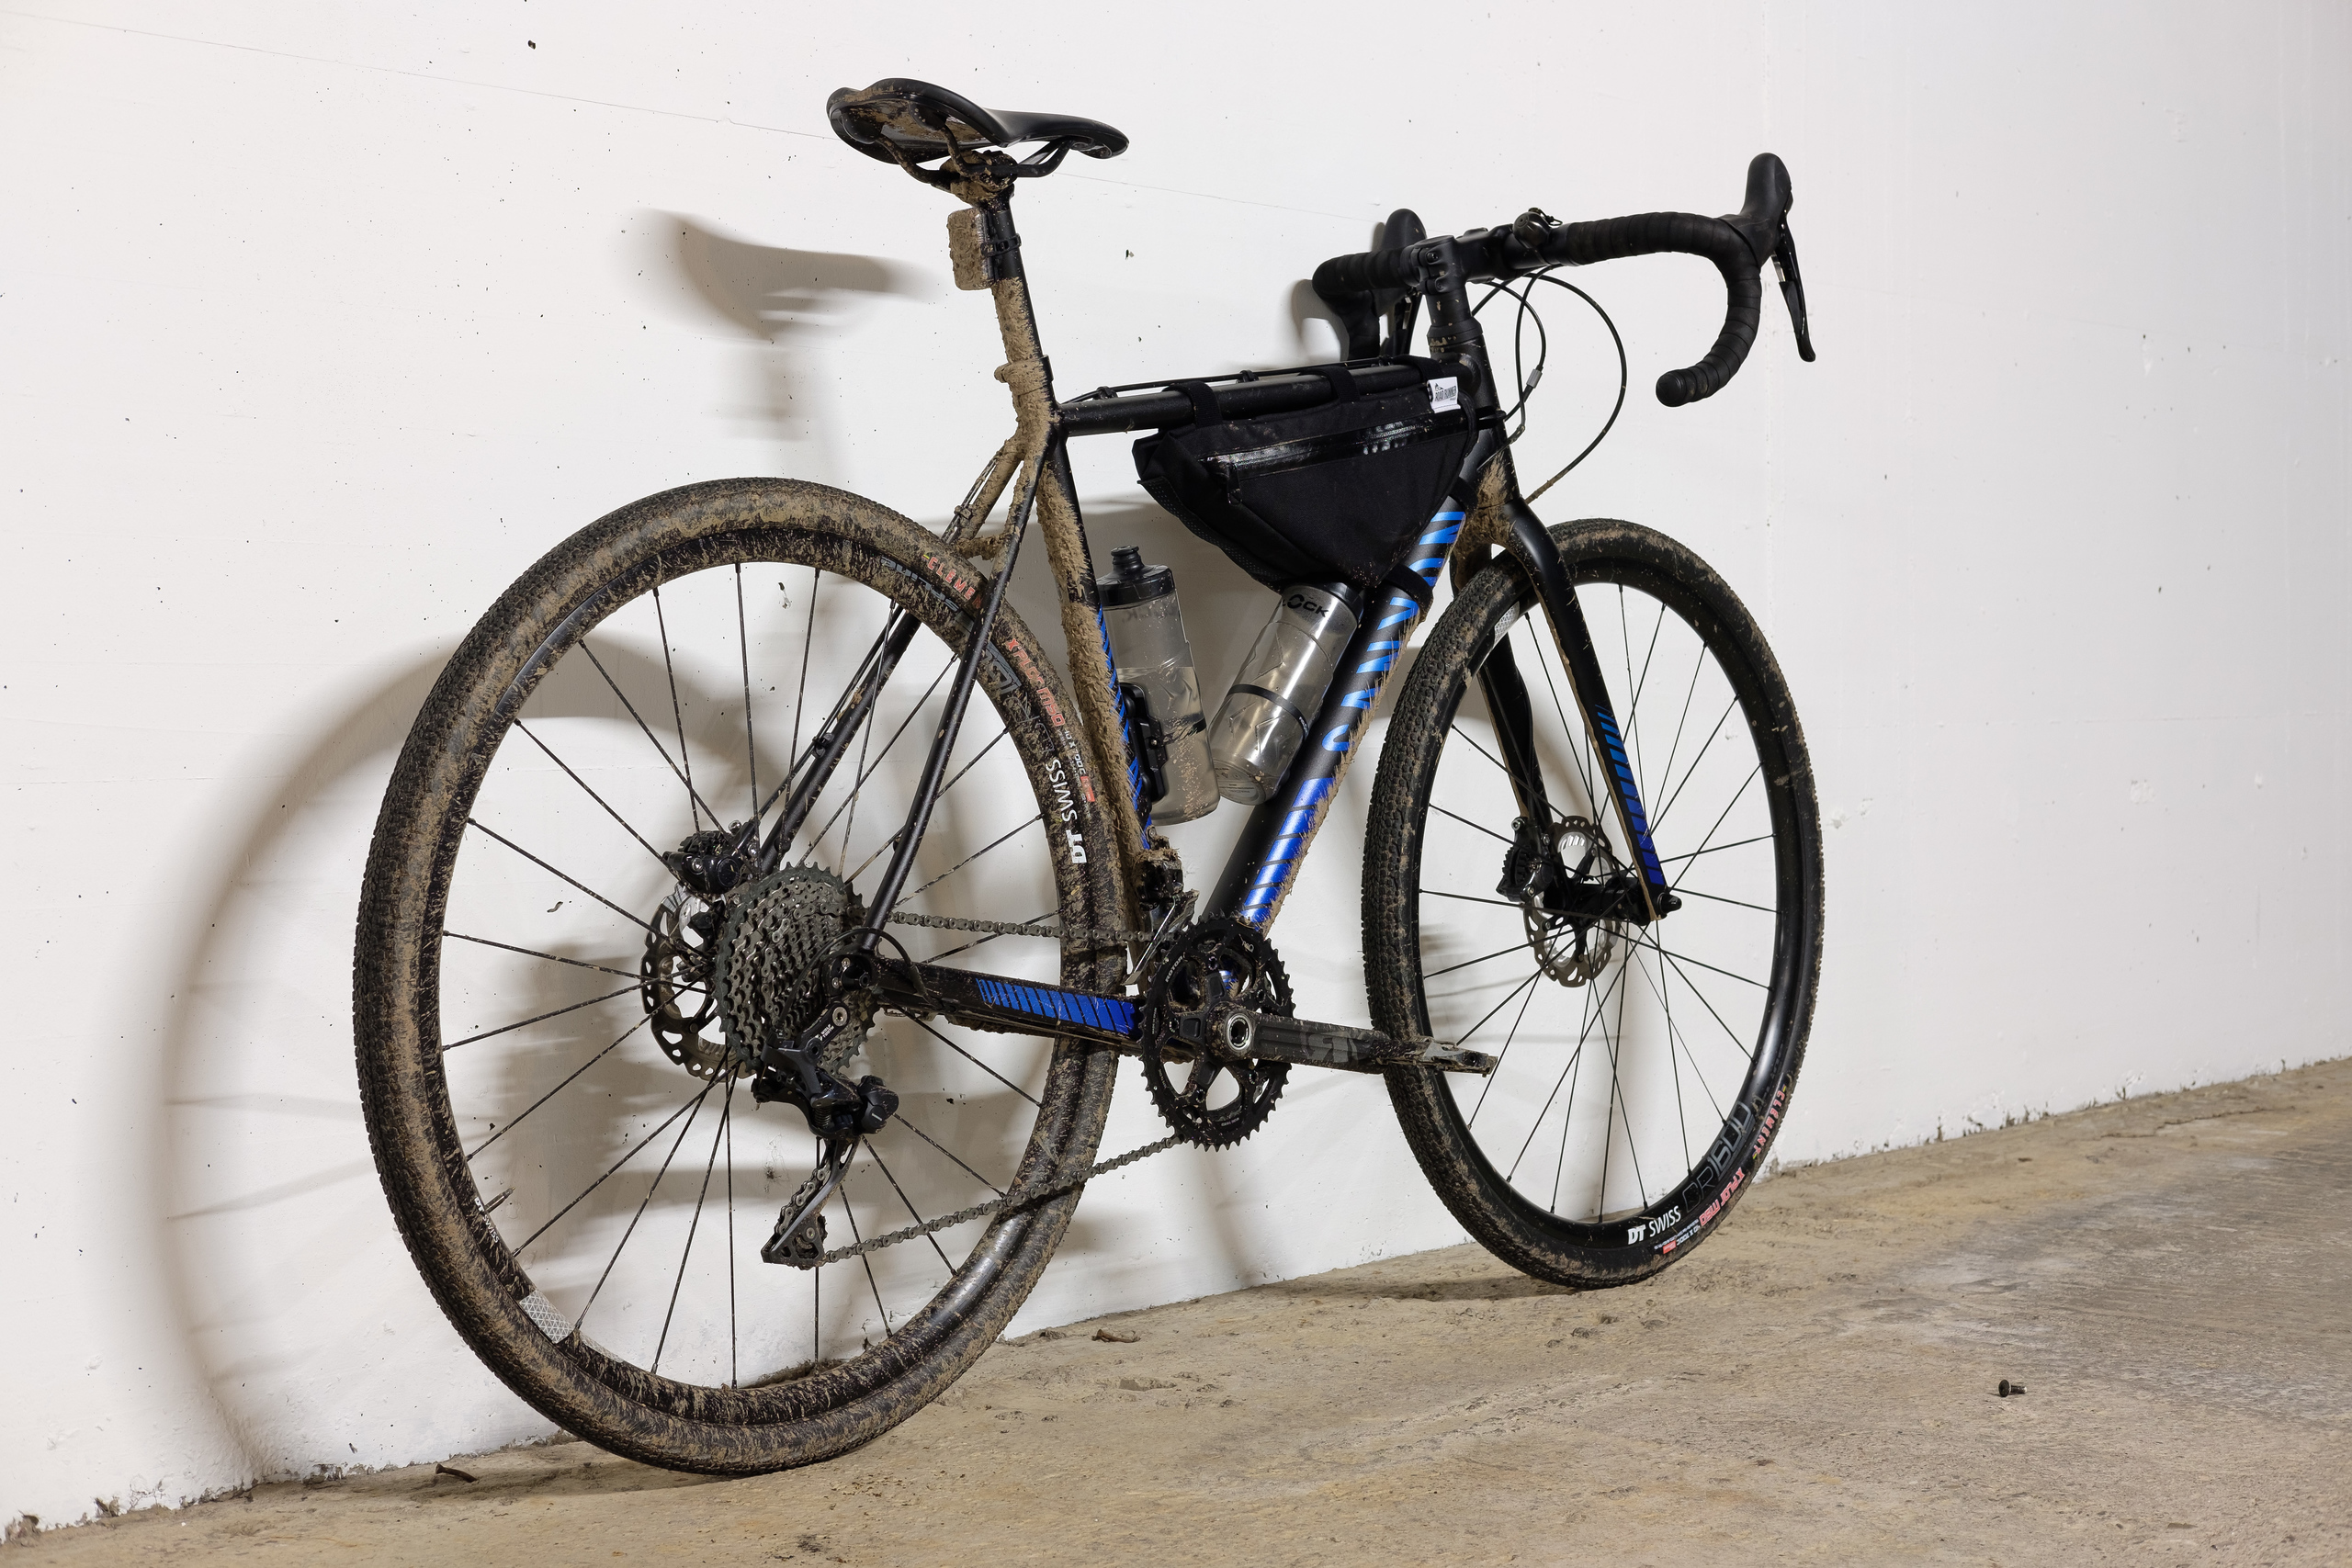 CX bike after a very muddy and fun ride